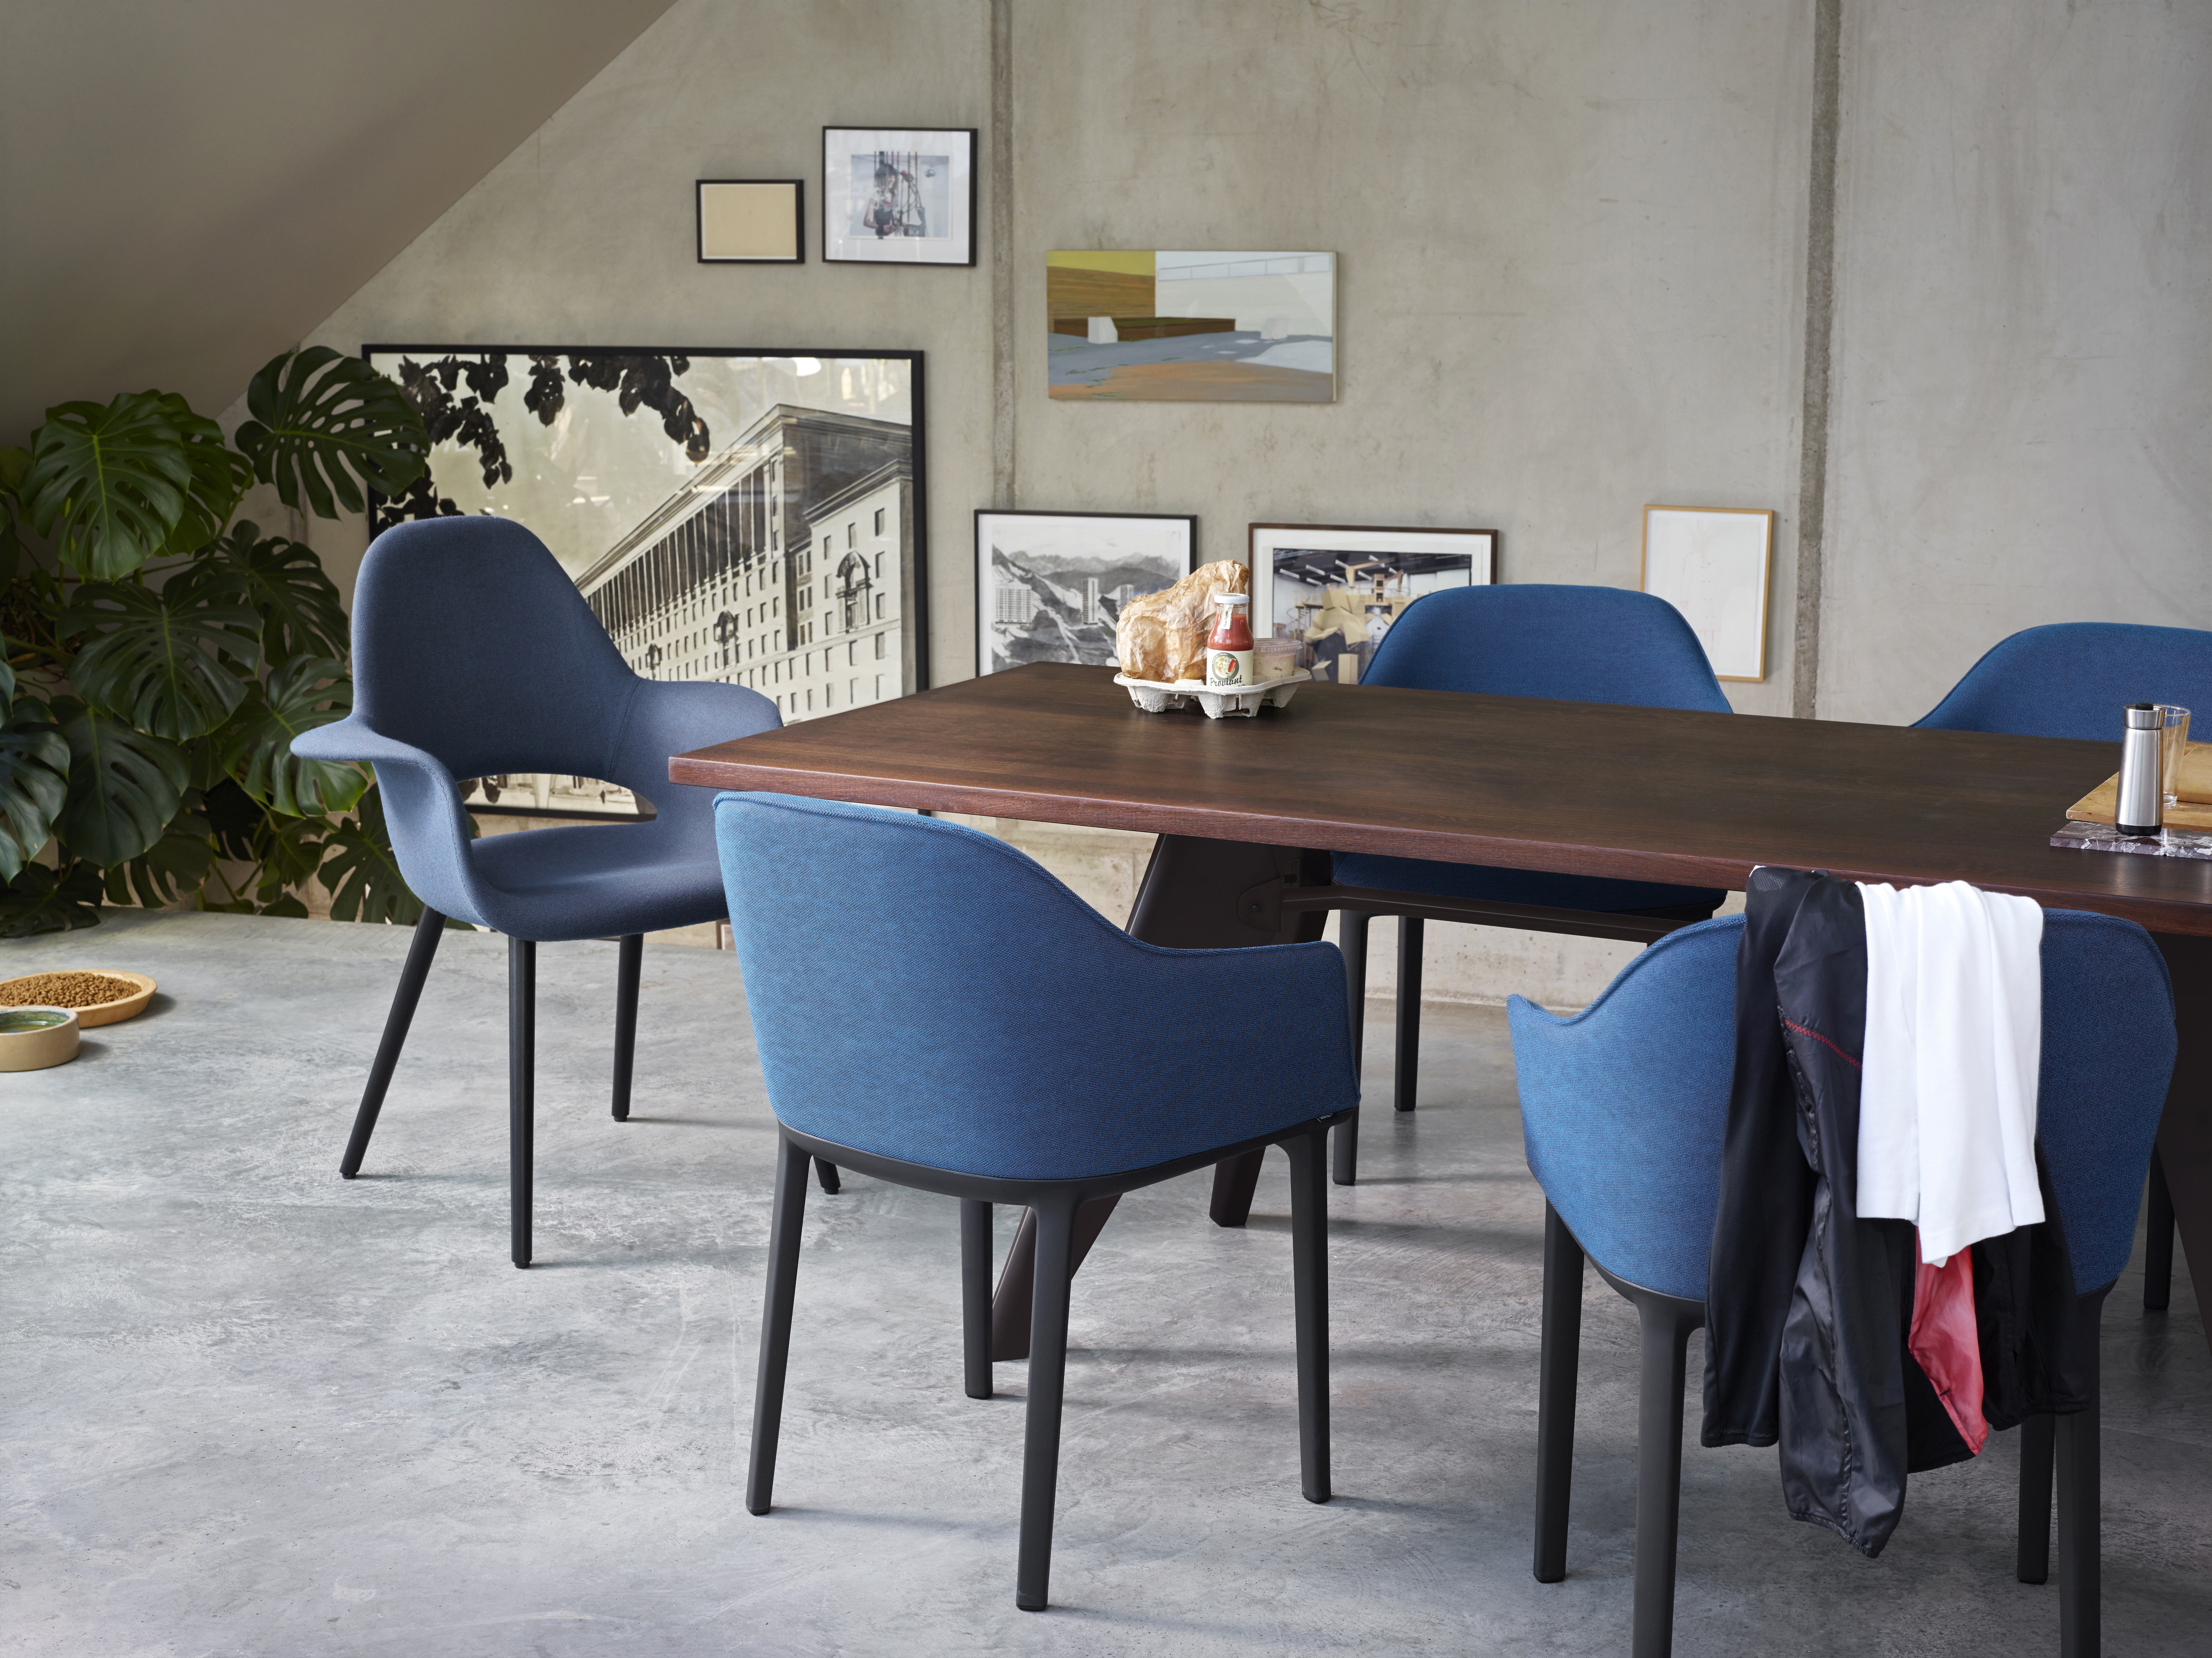 EM Table, Organic Conference, Softshell Chair_P_932345_master